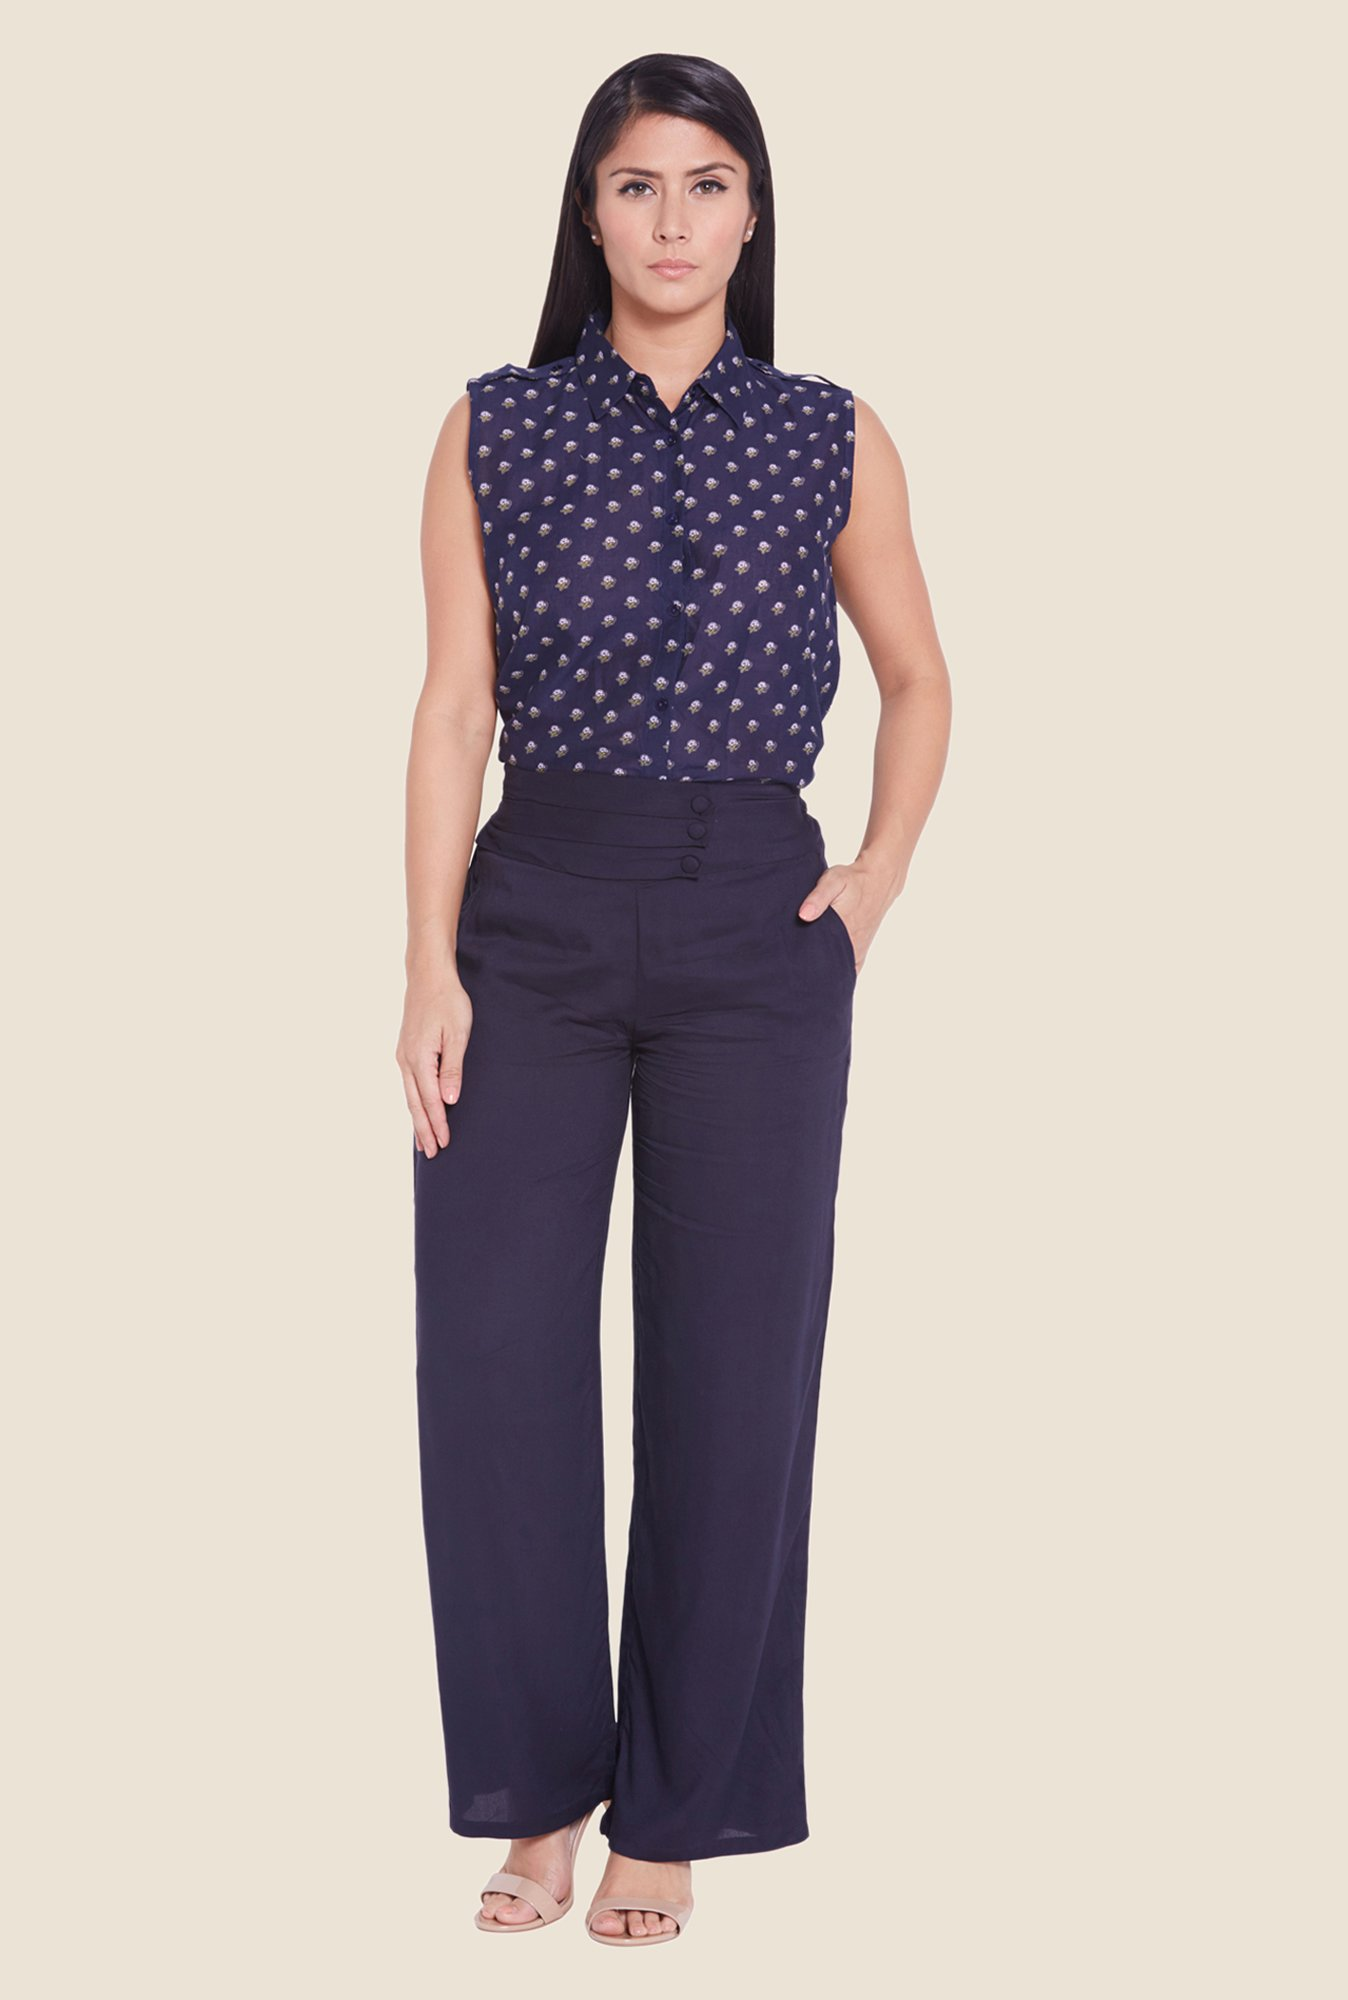 Globus Navy Solid Trousers